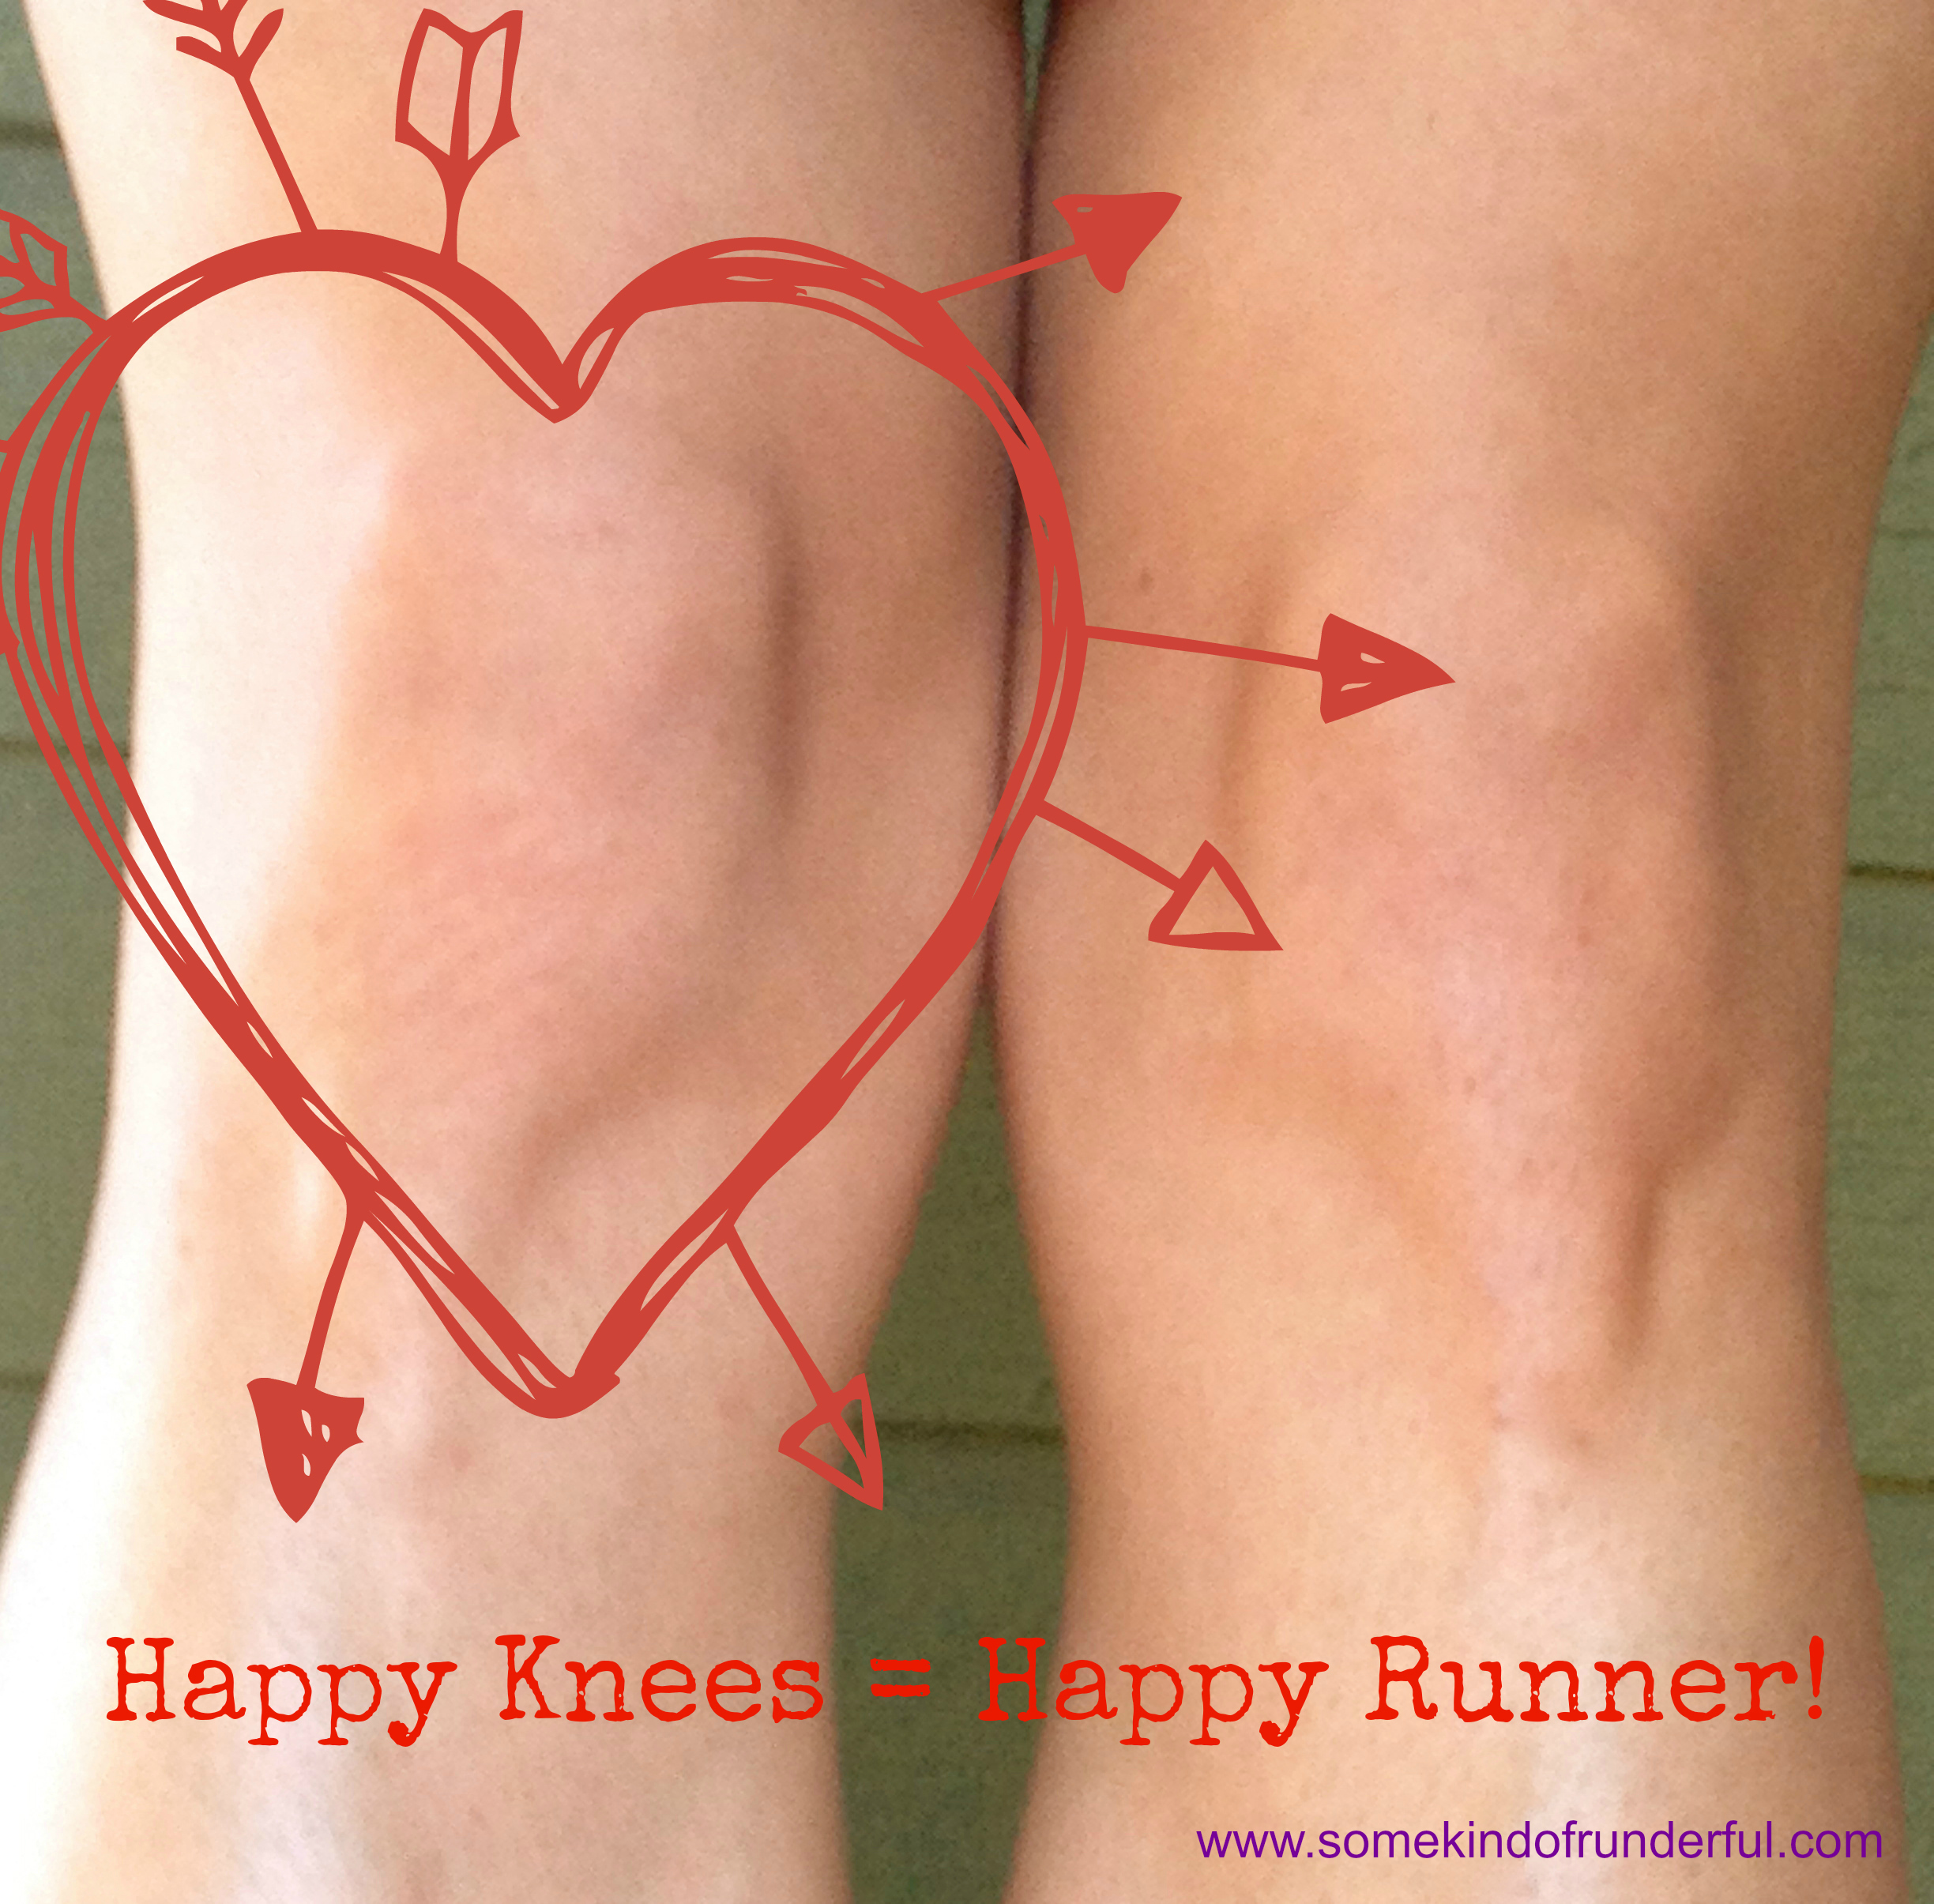 Why does my knee hurt after running